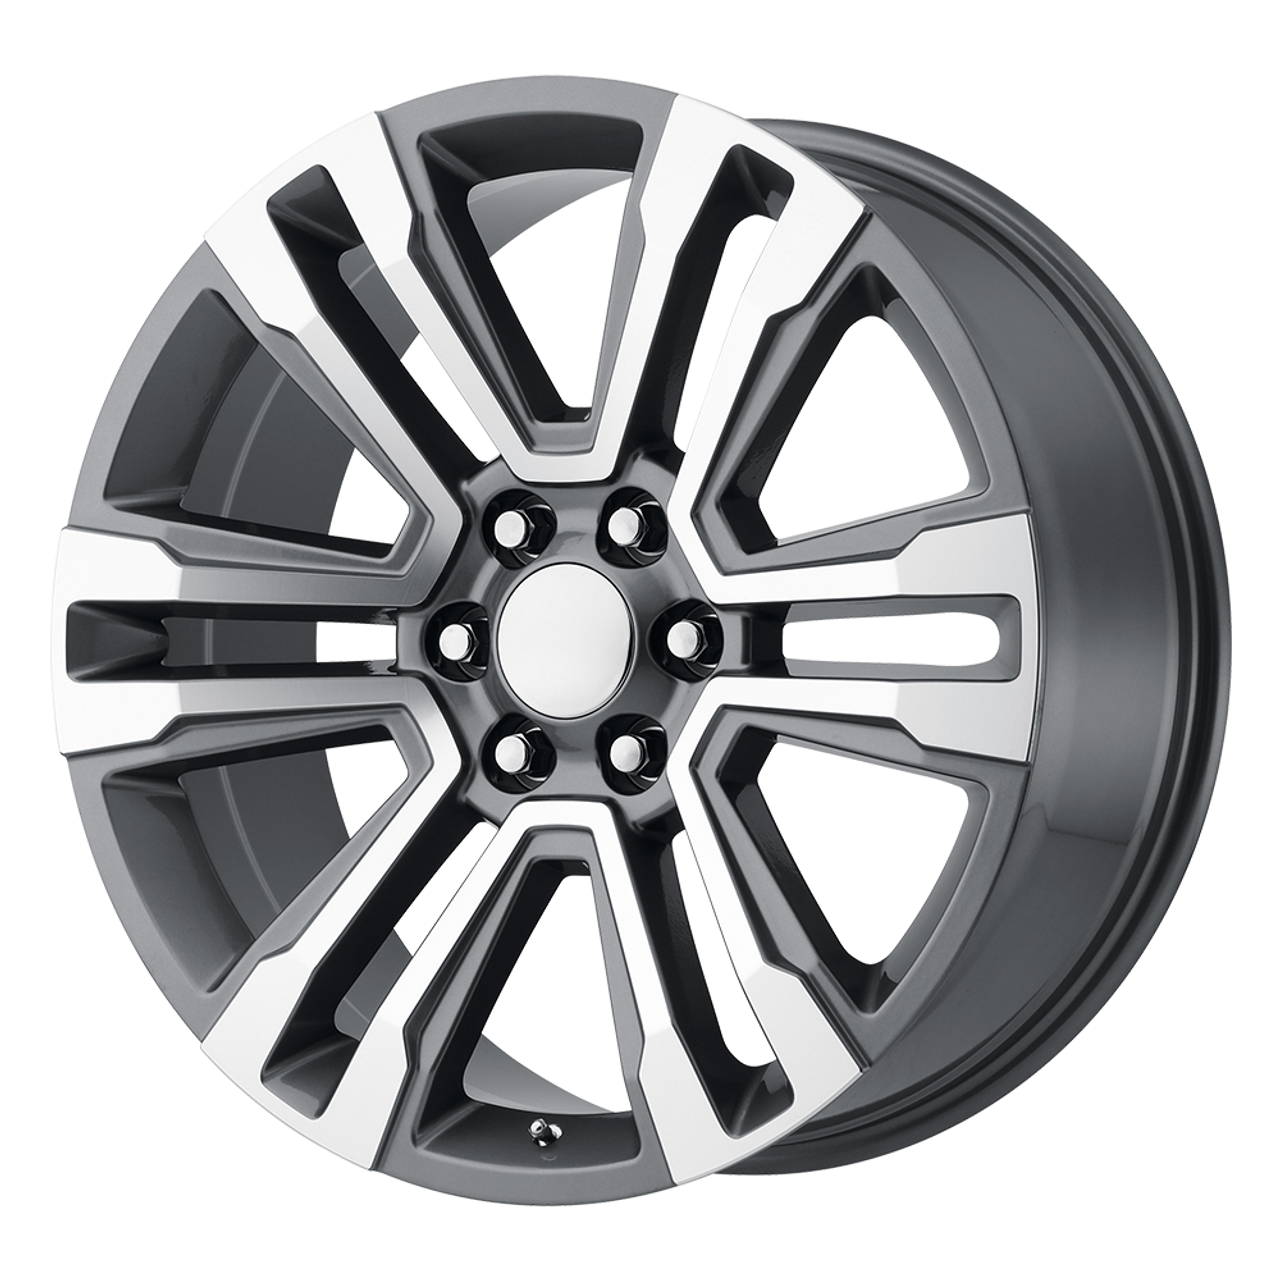 "Gunmetal and Machine 20"" Denali Style Split Spoke Wheels for GMC Sierra, Yukon, Denali - New Set of 4"